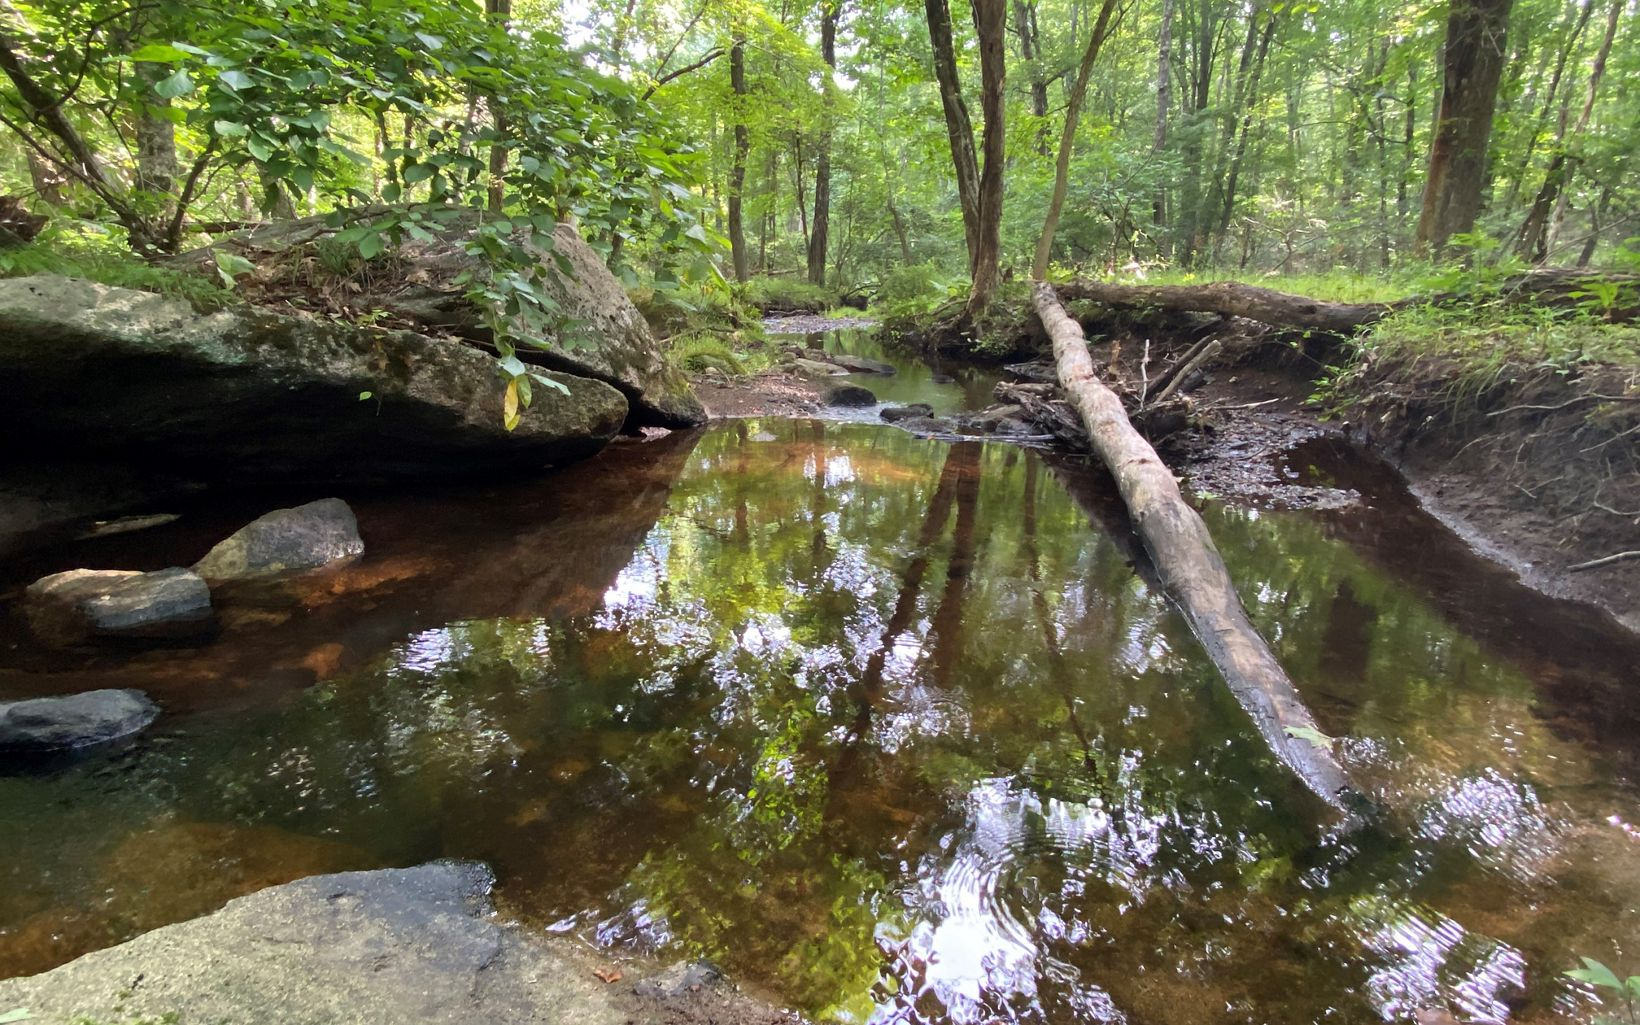 Sunlight reflects off a small pool in a slowly flowing stream under a summer forest canopy.